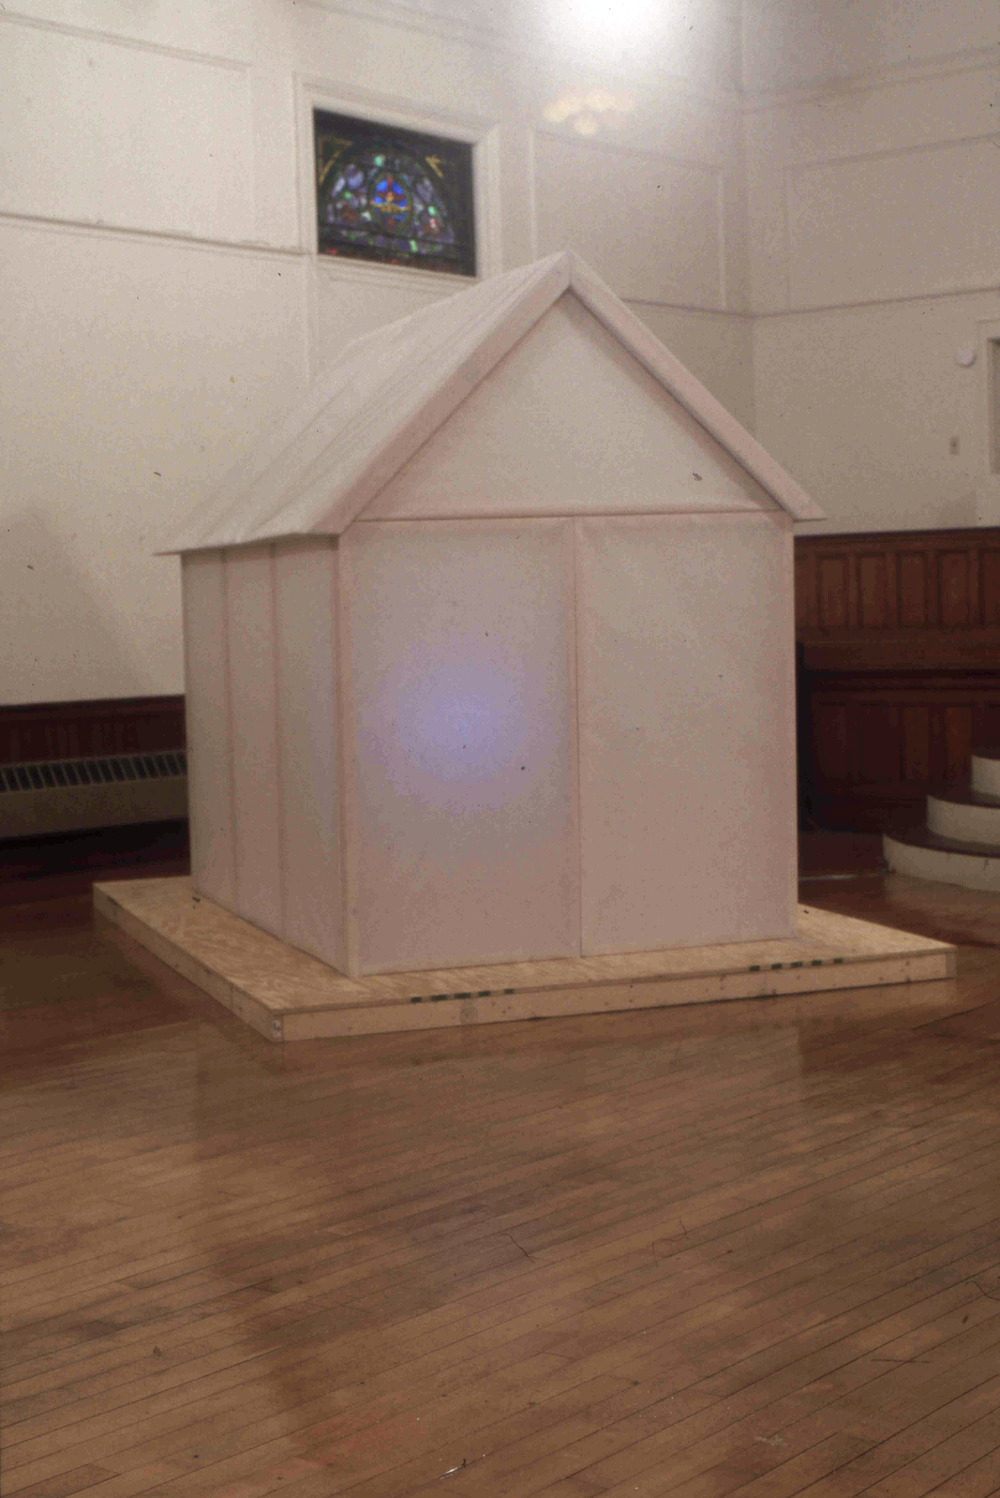 TV House, 2003, installation, wood and paper with TV off, 2003, 8' L x 6' W x 10' H